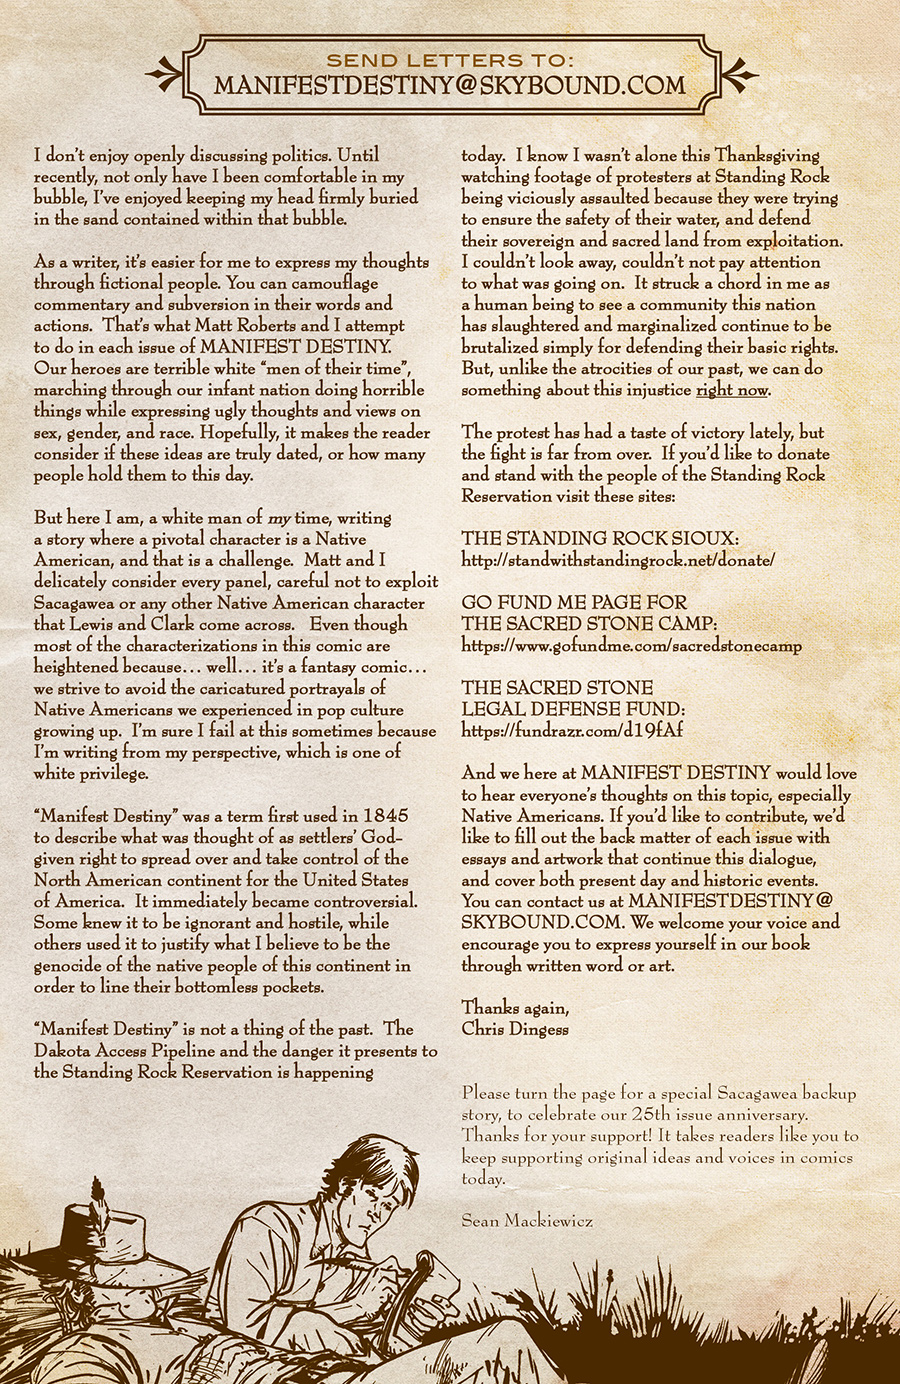 An Open Letter from the Writer of MANIFEST DESTINY